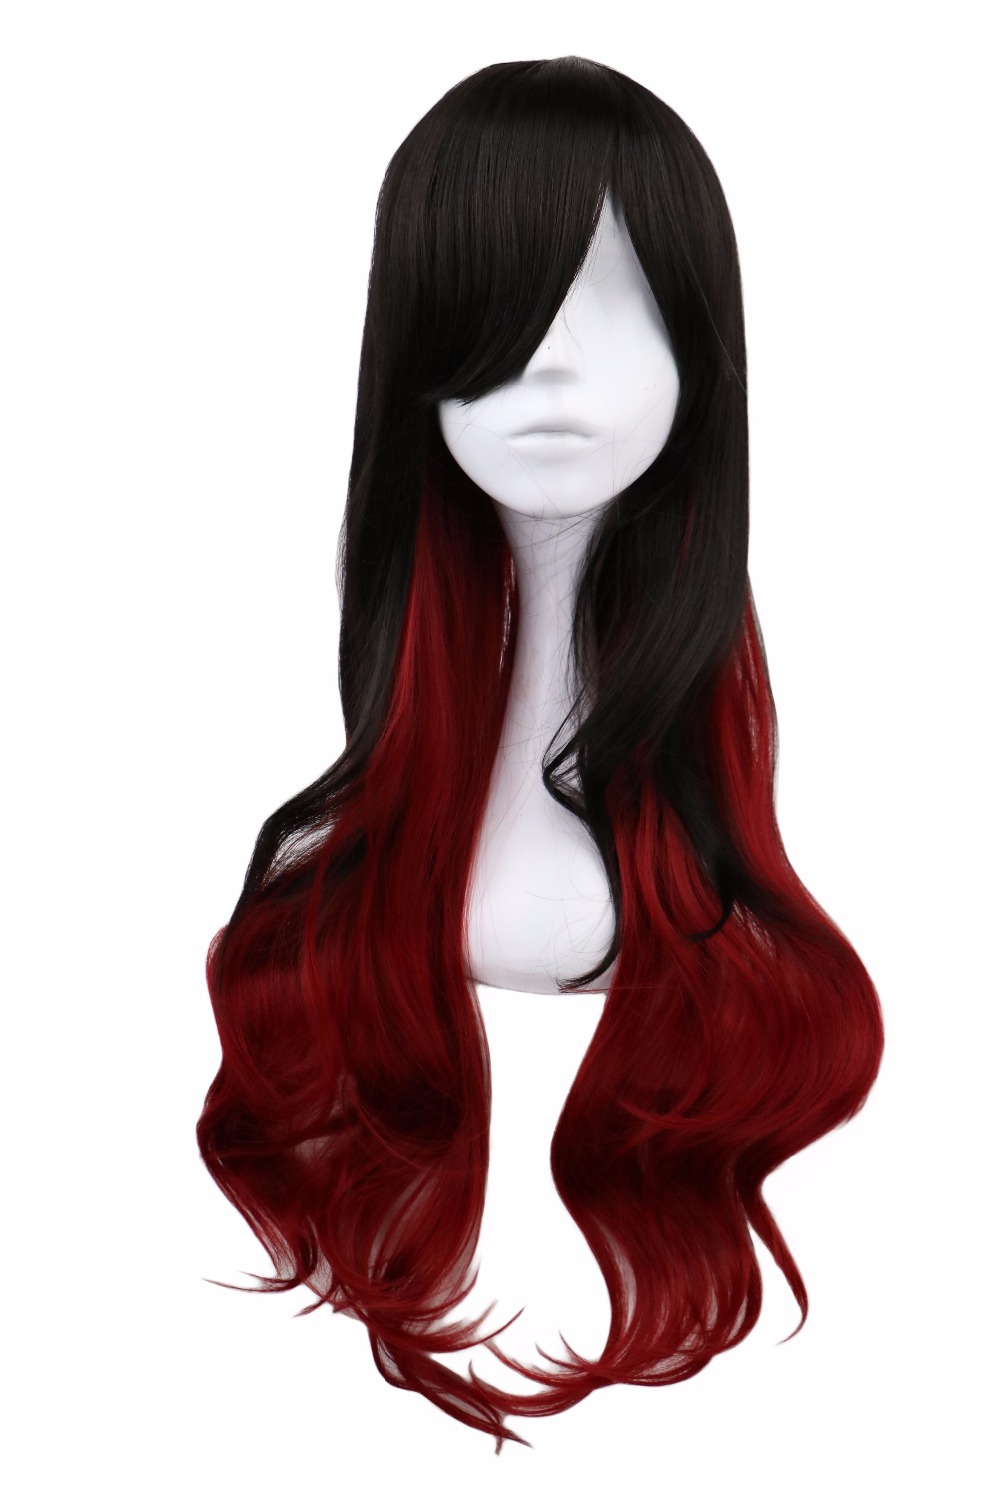 QQXCAIW Women Long Curly Cosplay Black To Red Ombre 68 Cm Synthetic Hair Wigs